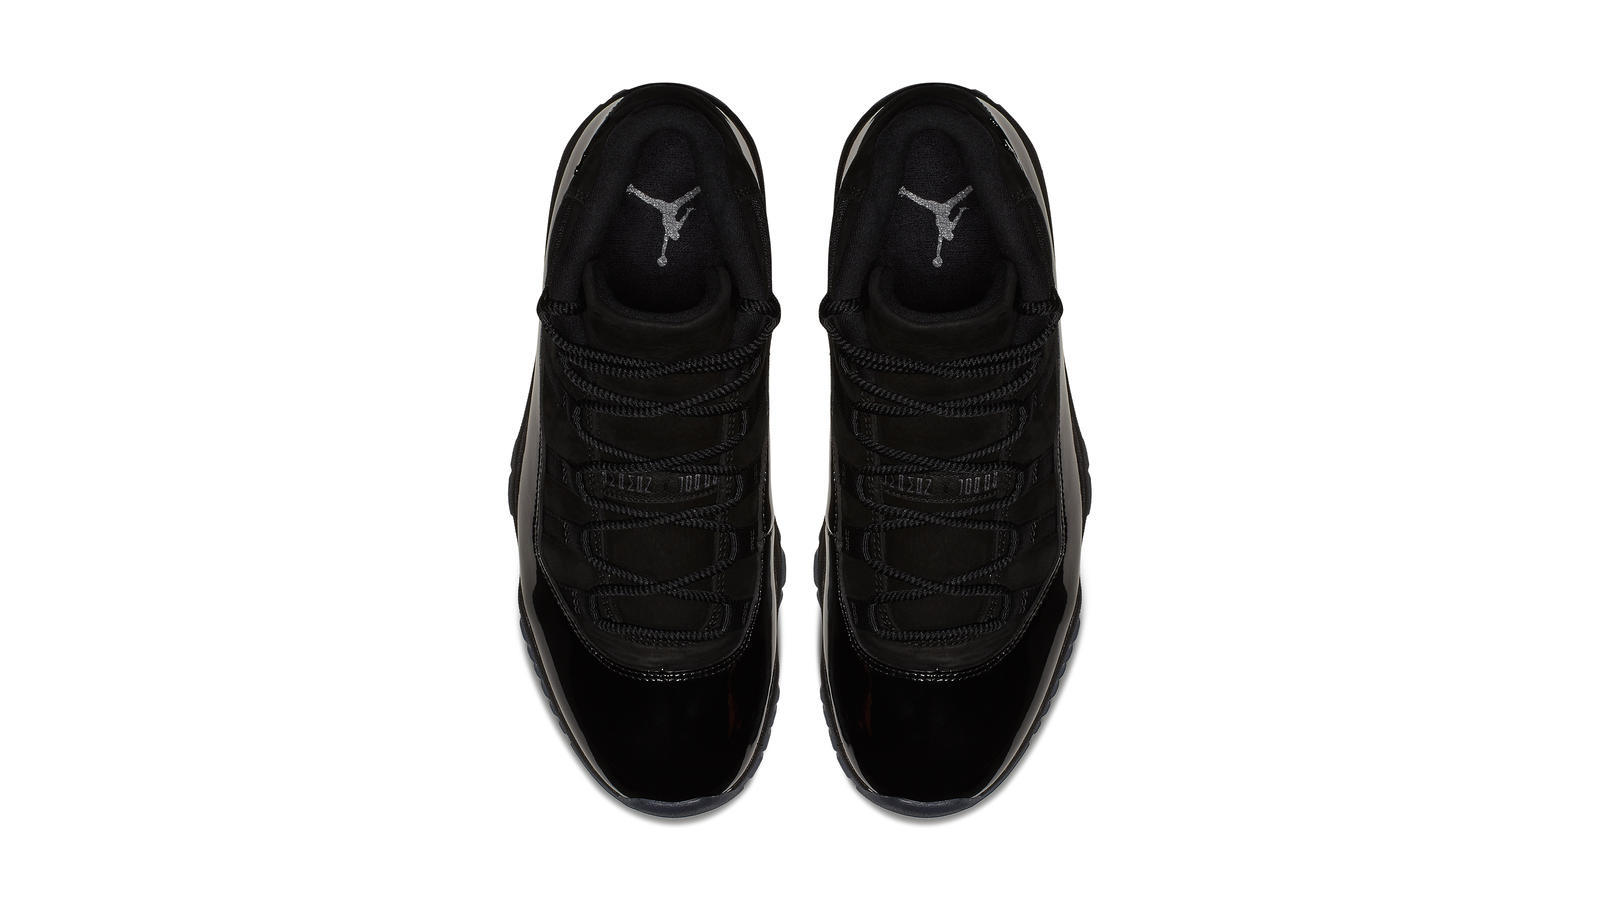 Air Jordan XI Cap and Gown 3